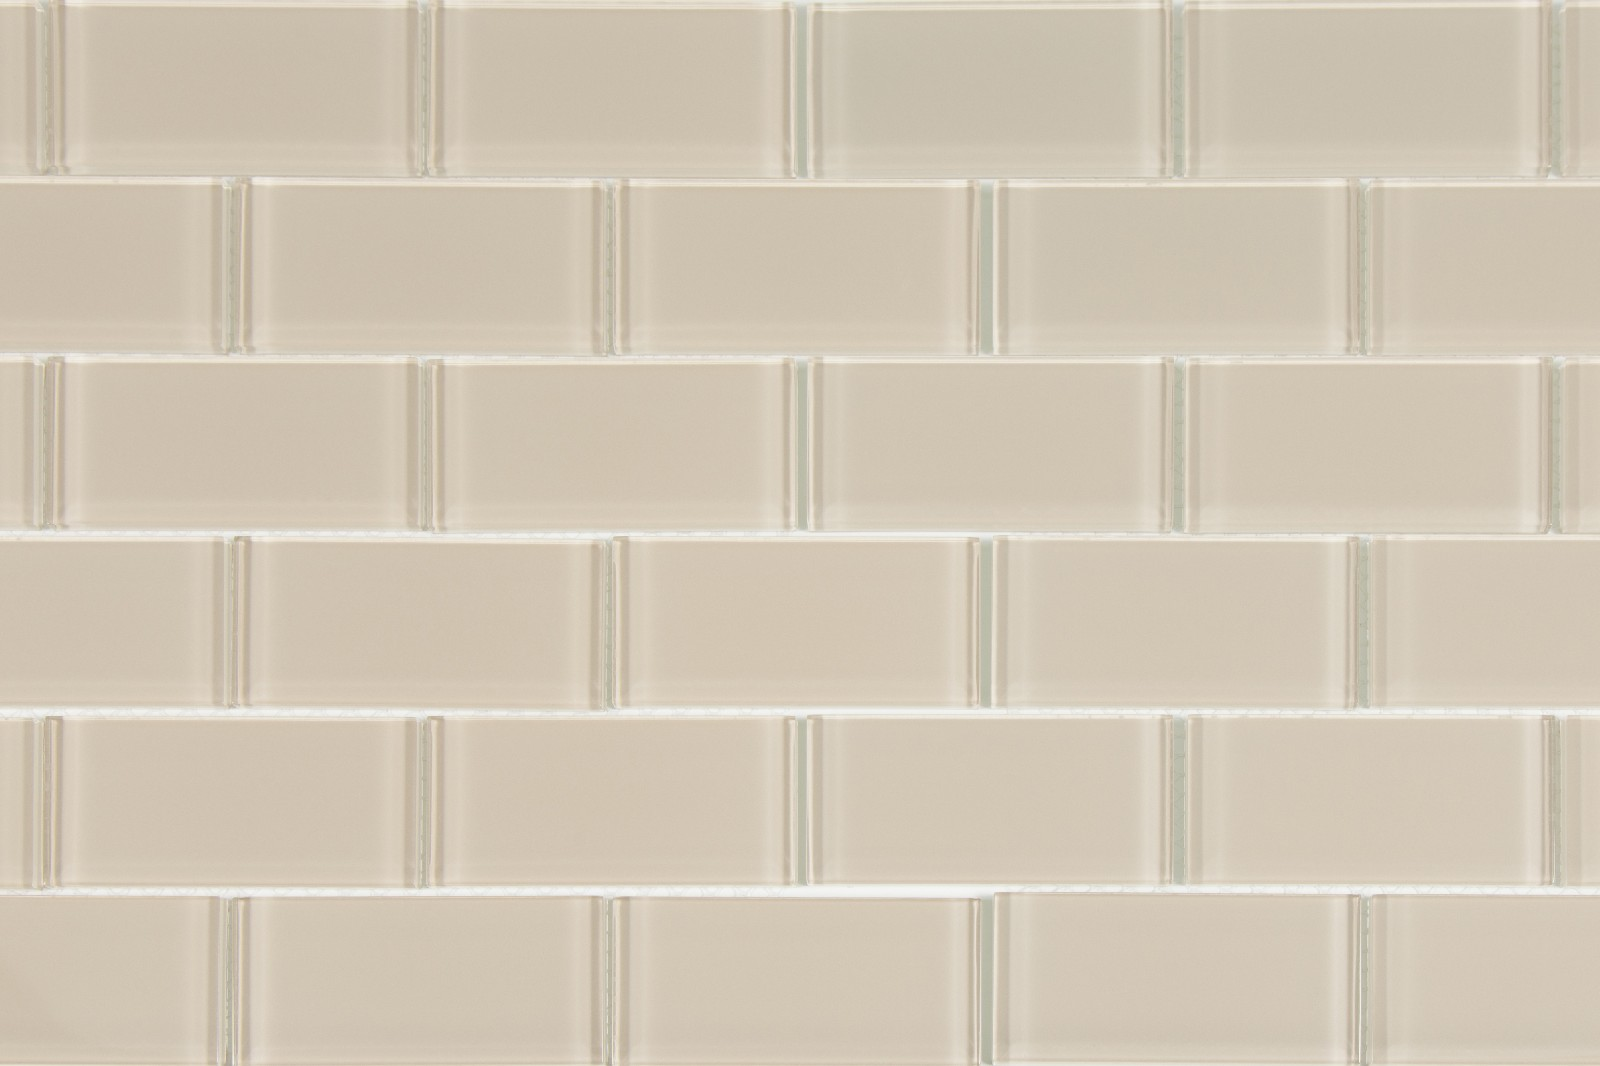 Subway Glass Tile Mosaics Come In 2x4 And 3x6 South Cypress,White Kitchen Cabinets With Carrara Marble Countertops